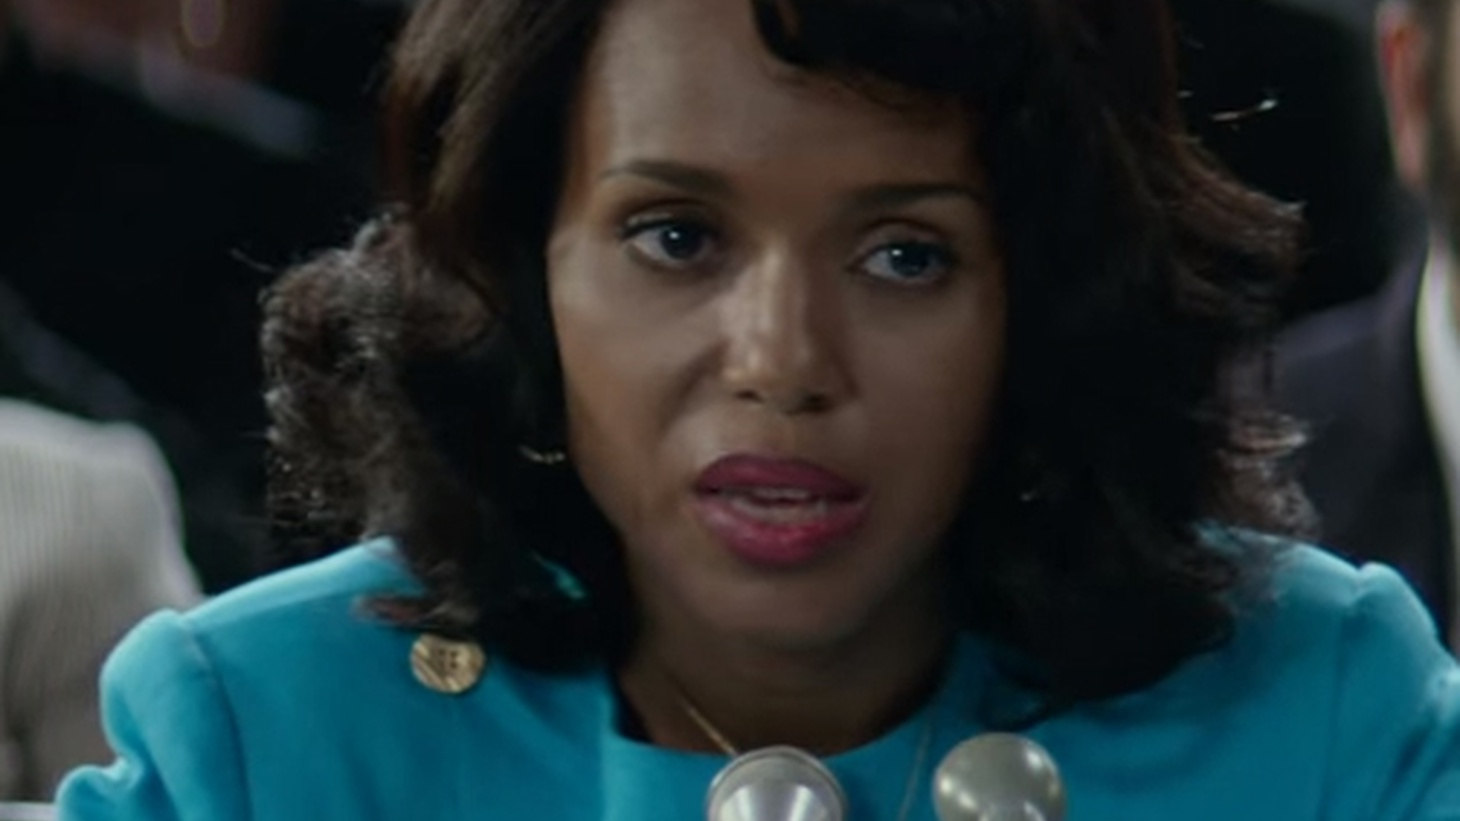 With an opening Saturday, the HBO film  Confirmation  is about the Senate hearings that ultimately put Clarence Thomas on the US Supreme Court in 1991. One witness was Anita Hill, a young lawyer who claimed that Thomas sexually harassed her when she worked for him at two federal agencies.